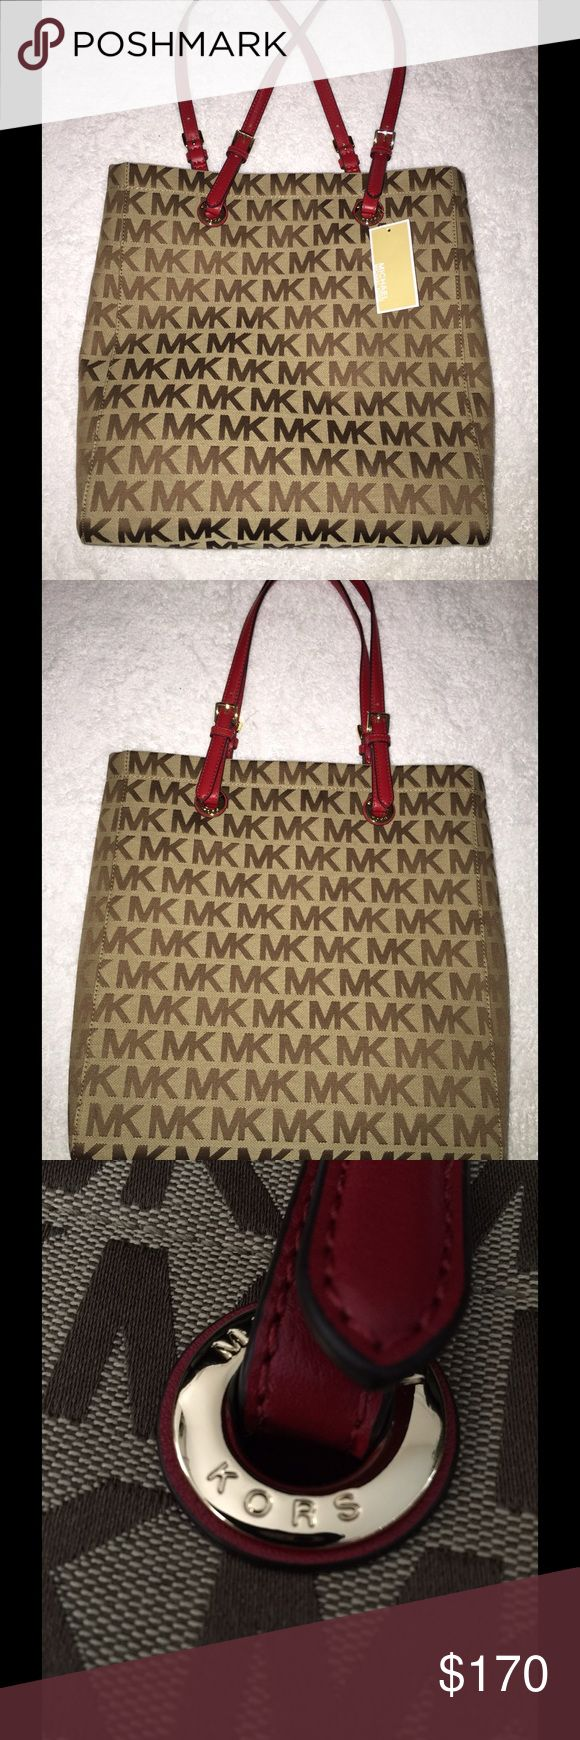 Michael Kors Jet Set tote New with tags Michael Kors Jet Set tote in tan & brown. Retails for $198. Michael Kors Bags Totes